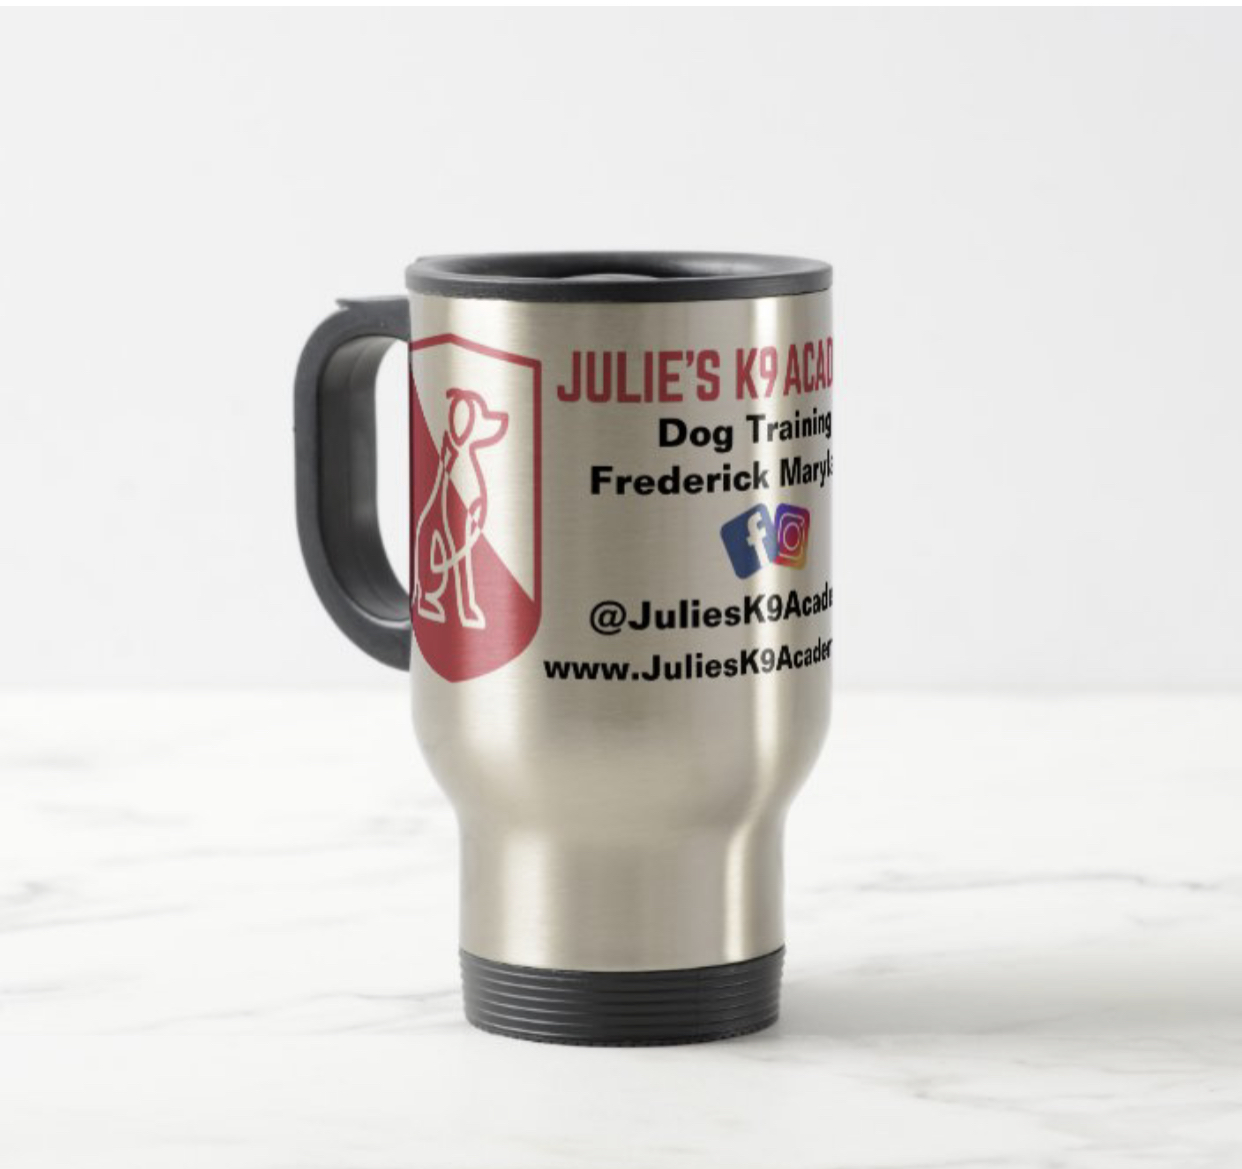 Julie's K9 Academy To Go Mug